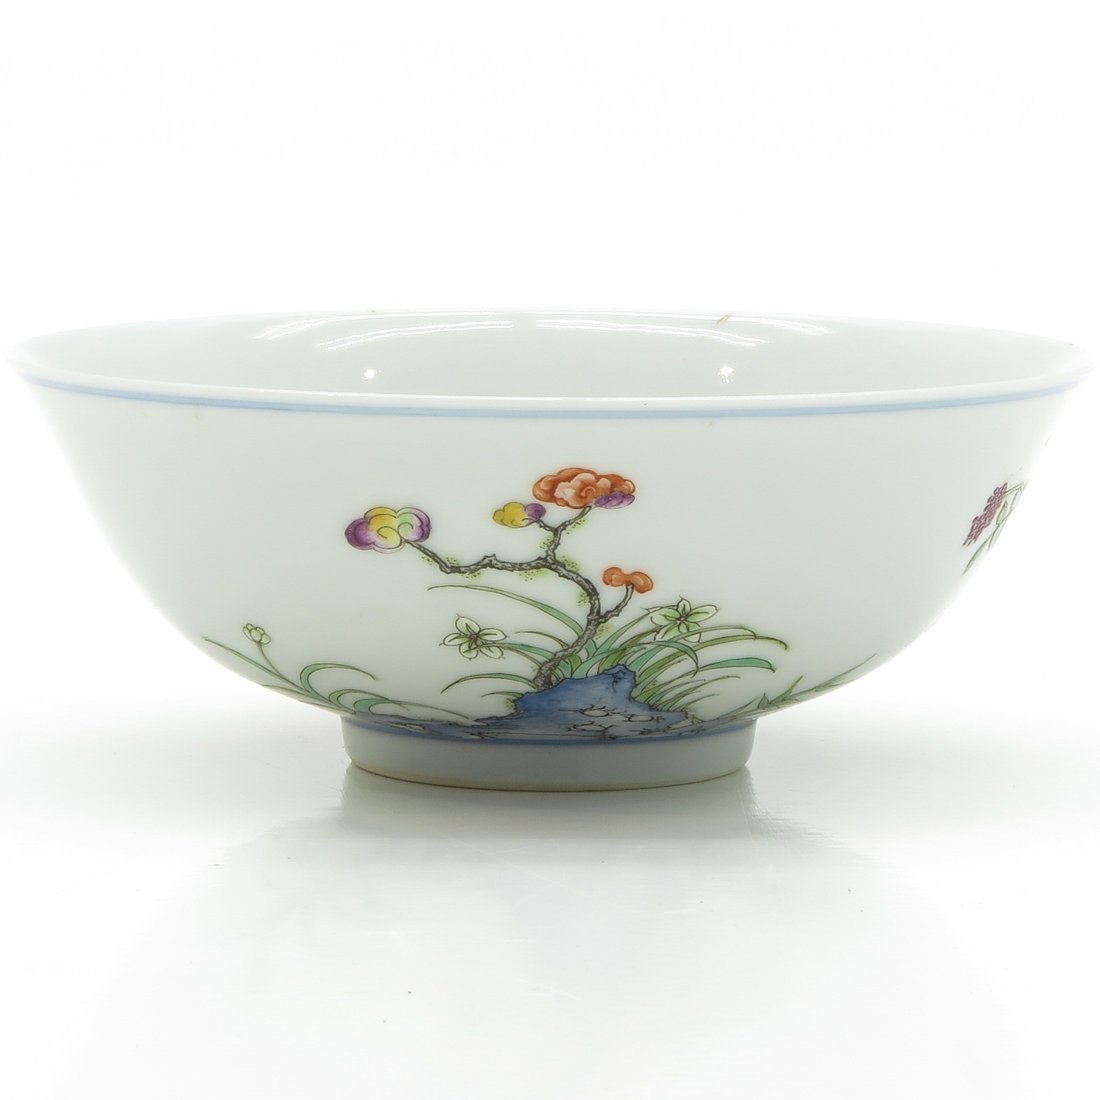 A Finely Detailed China Porcelain Bowl